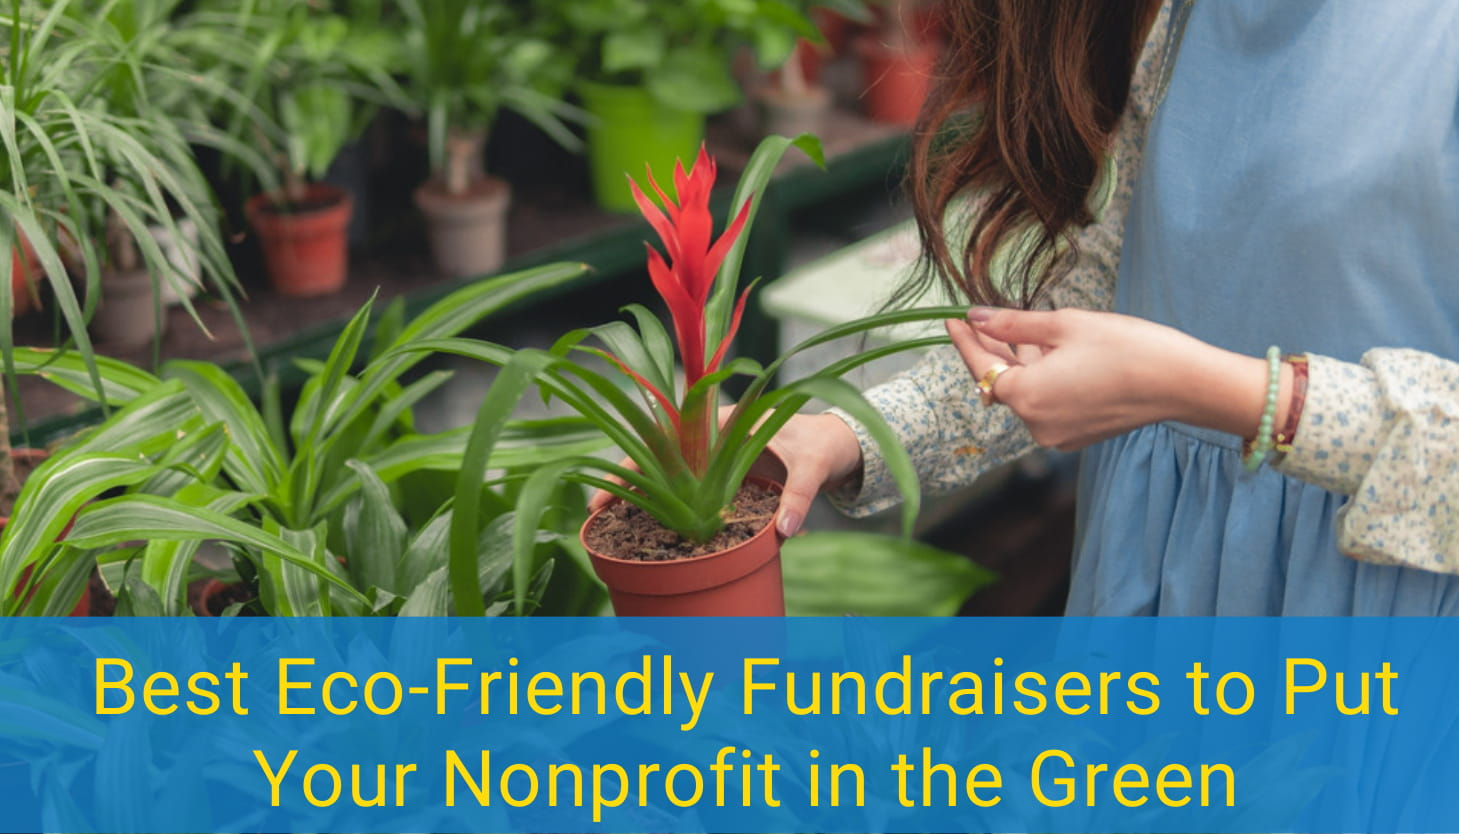 7 Best Eco-Friendly Fundraisers to Put Your Nonprofit in the Green